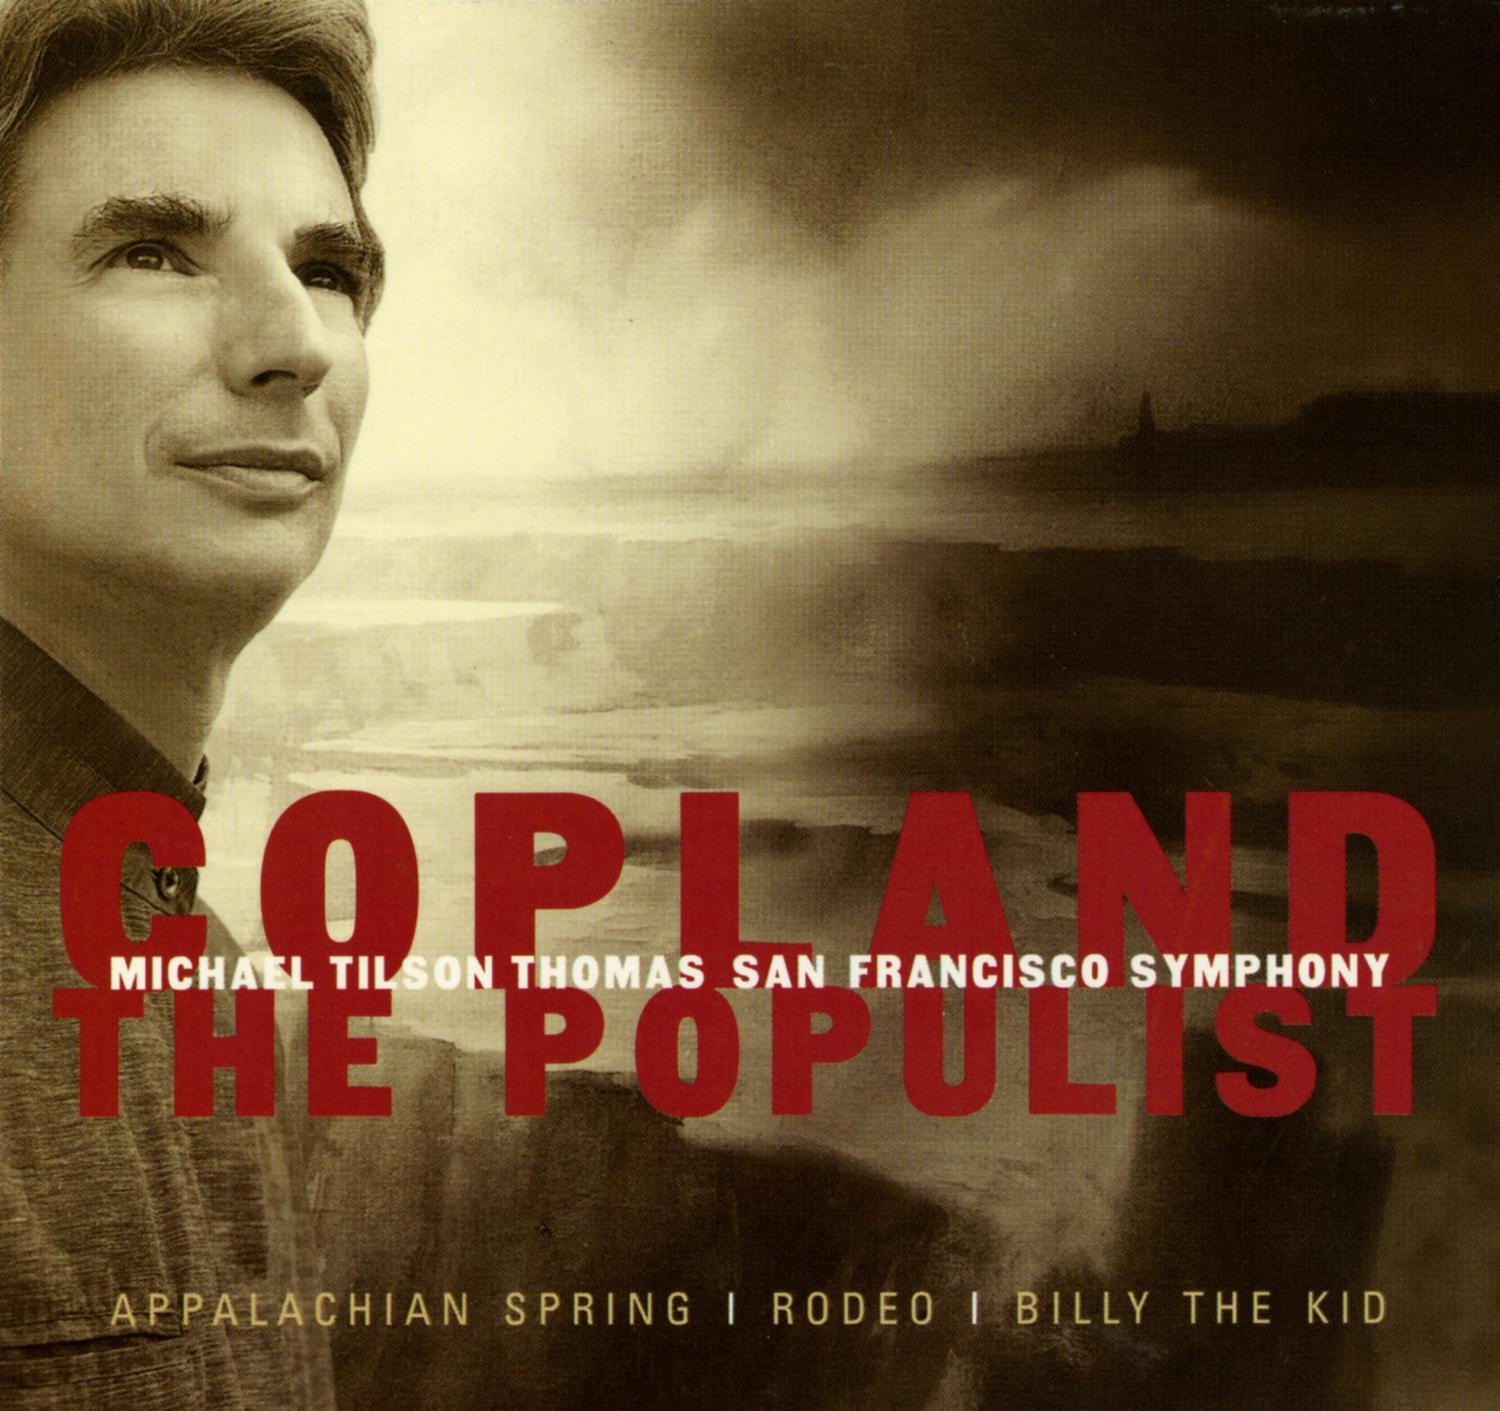 Copland: The Populist by Masterworks